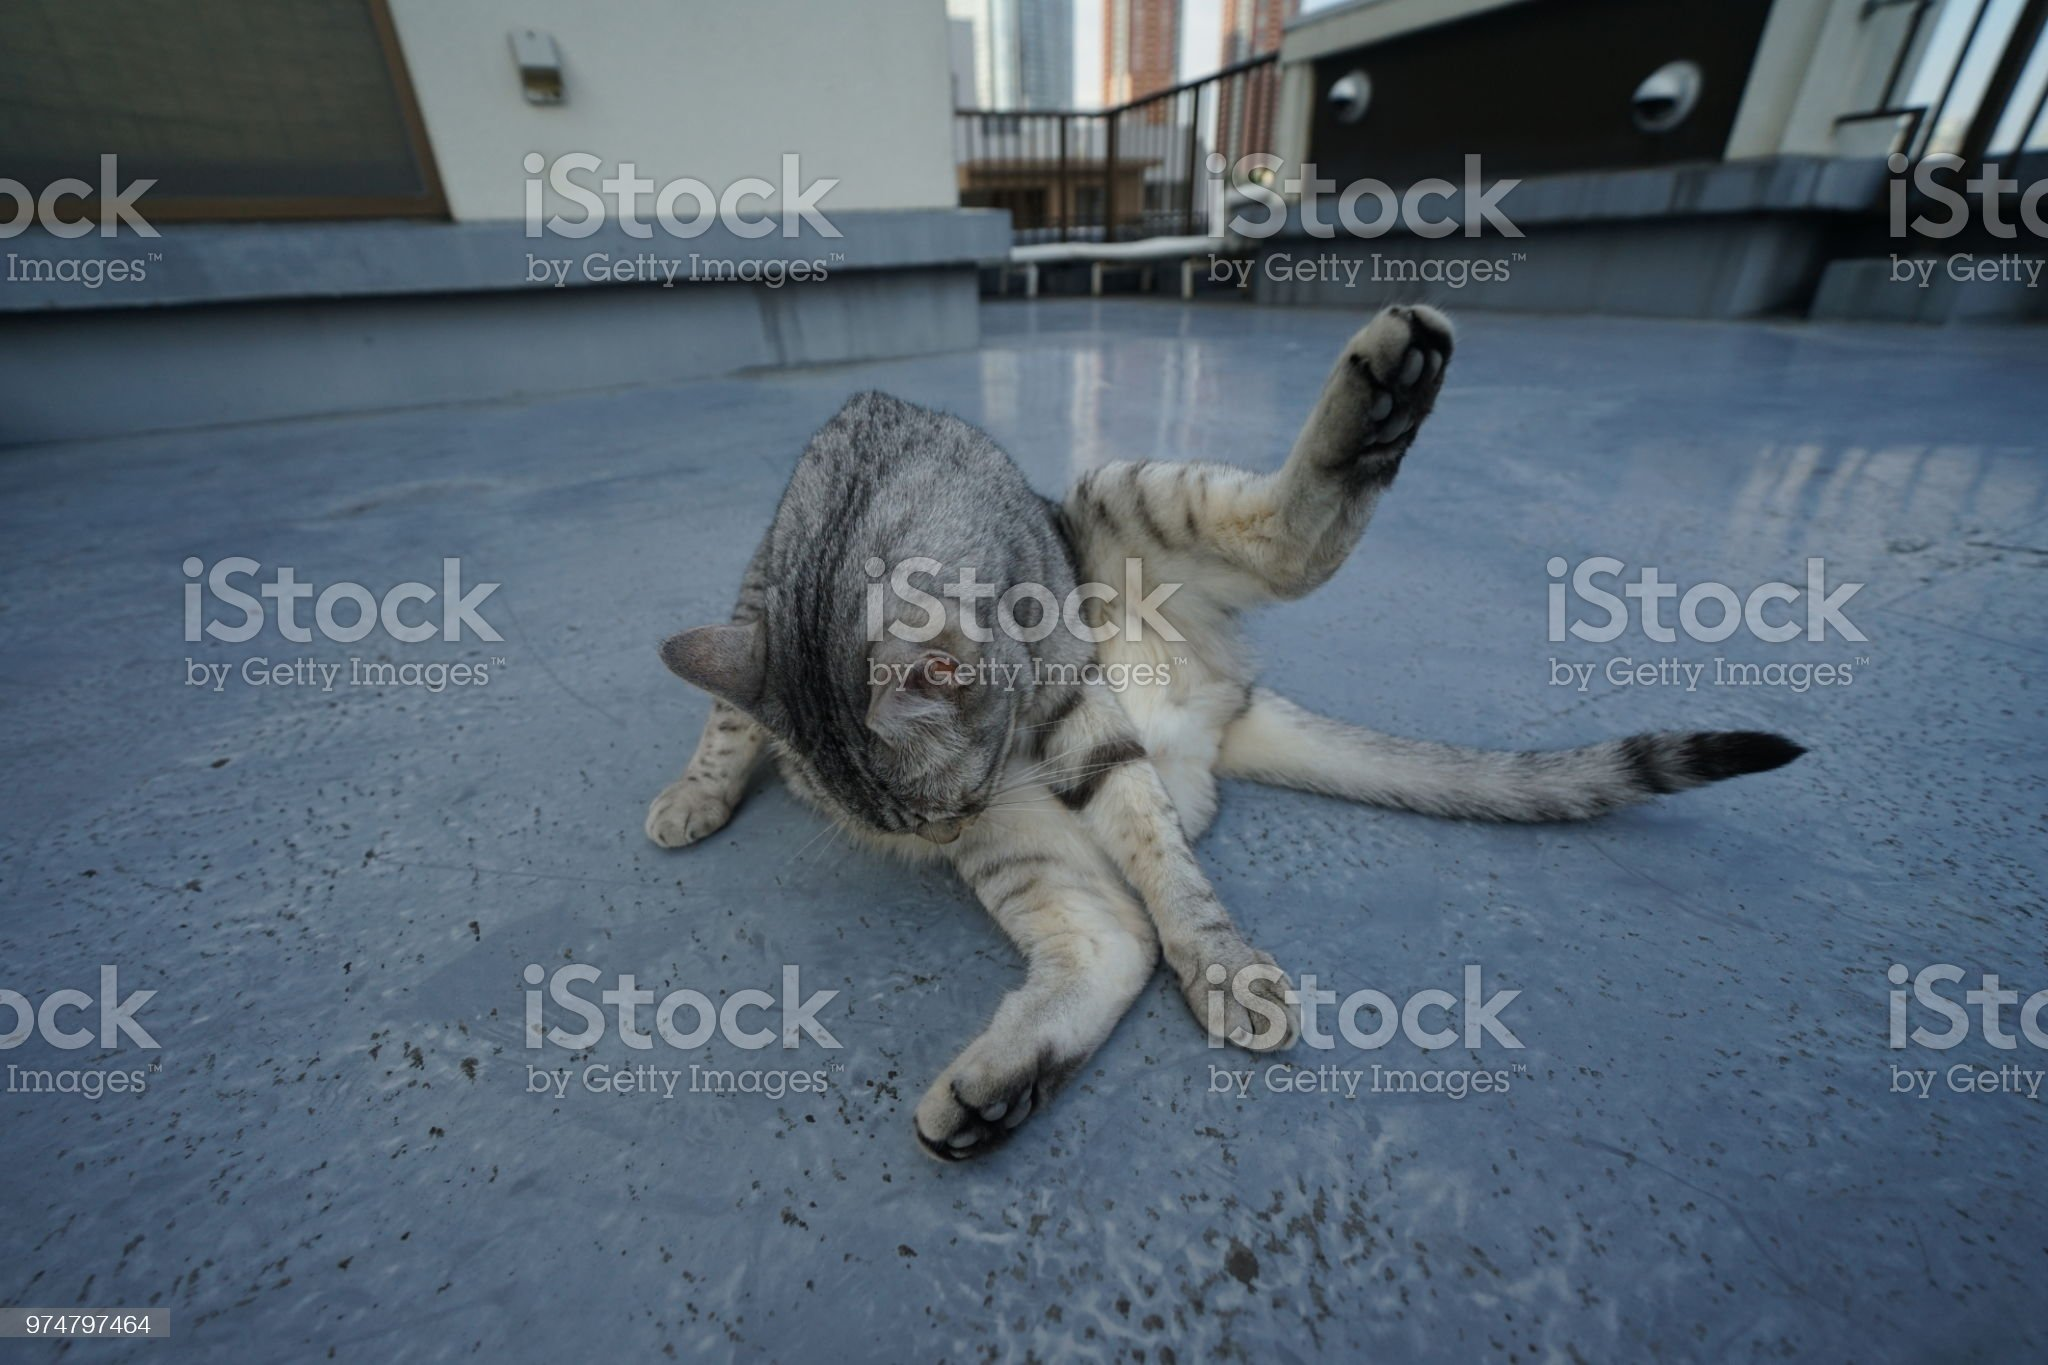 https://media.istockphoto.com/photos/egyptian-mau-in-tokyo-picture-id974797464?s=2048x2048